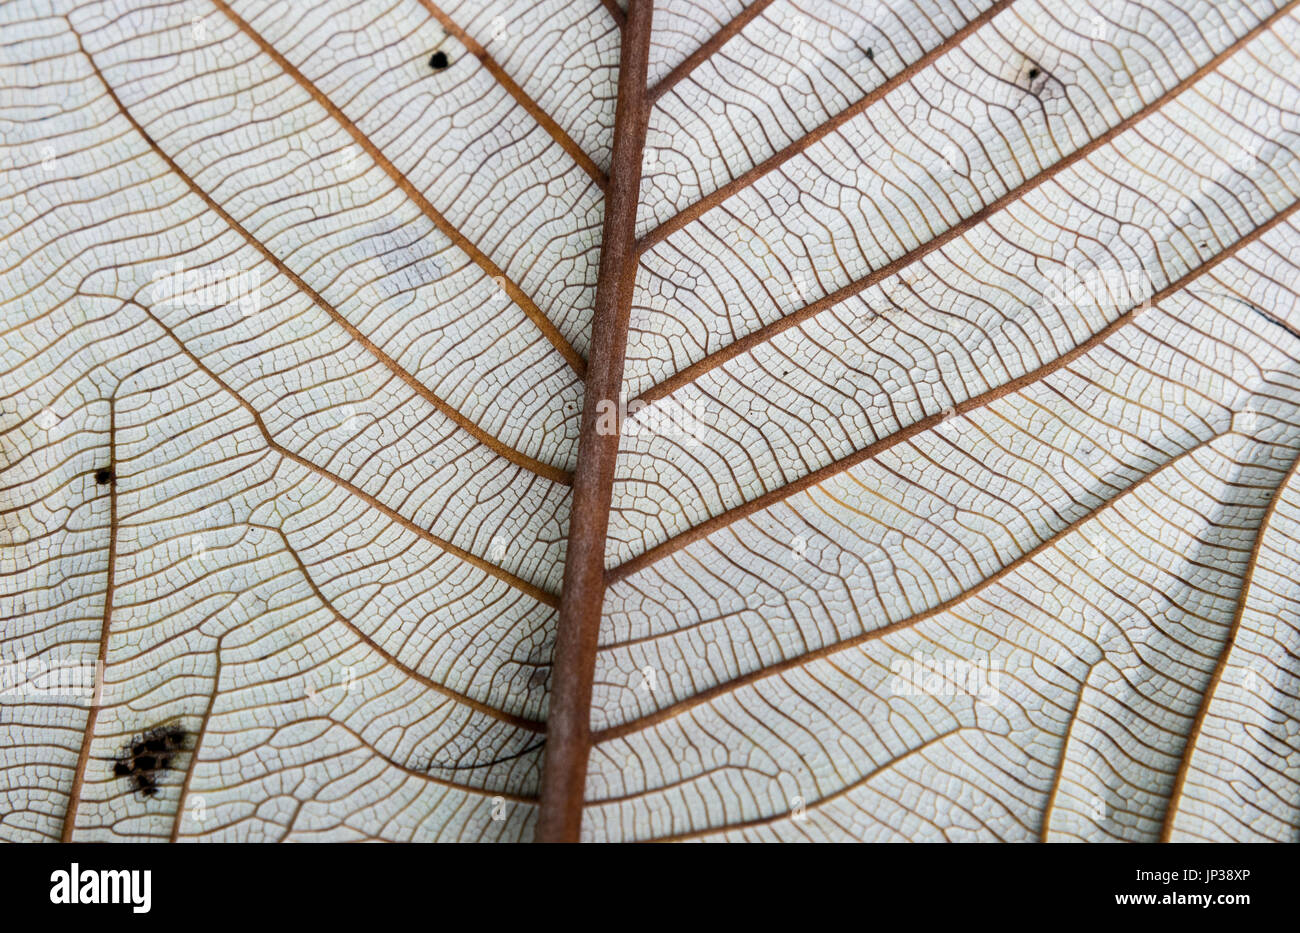 Detailed veins of a slivery leaf. Colombia, South America - Stock Image